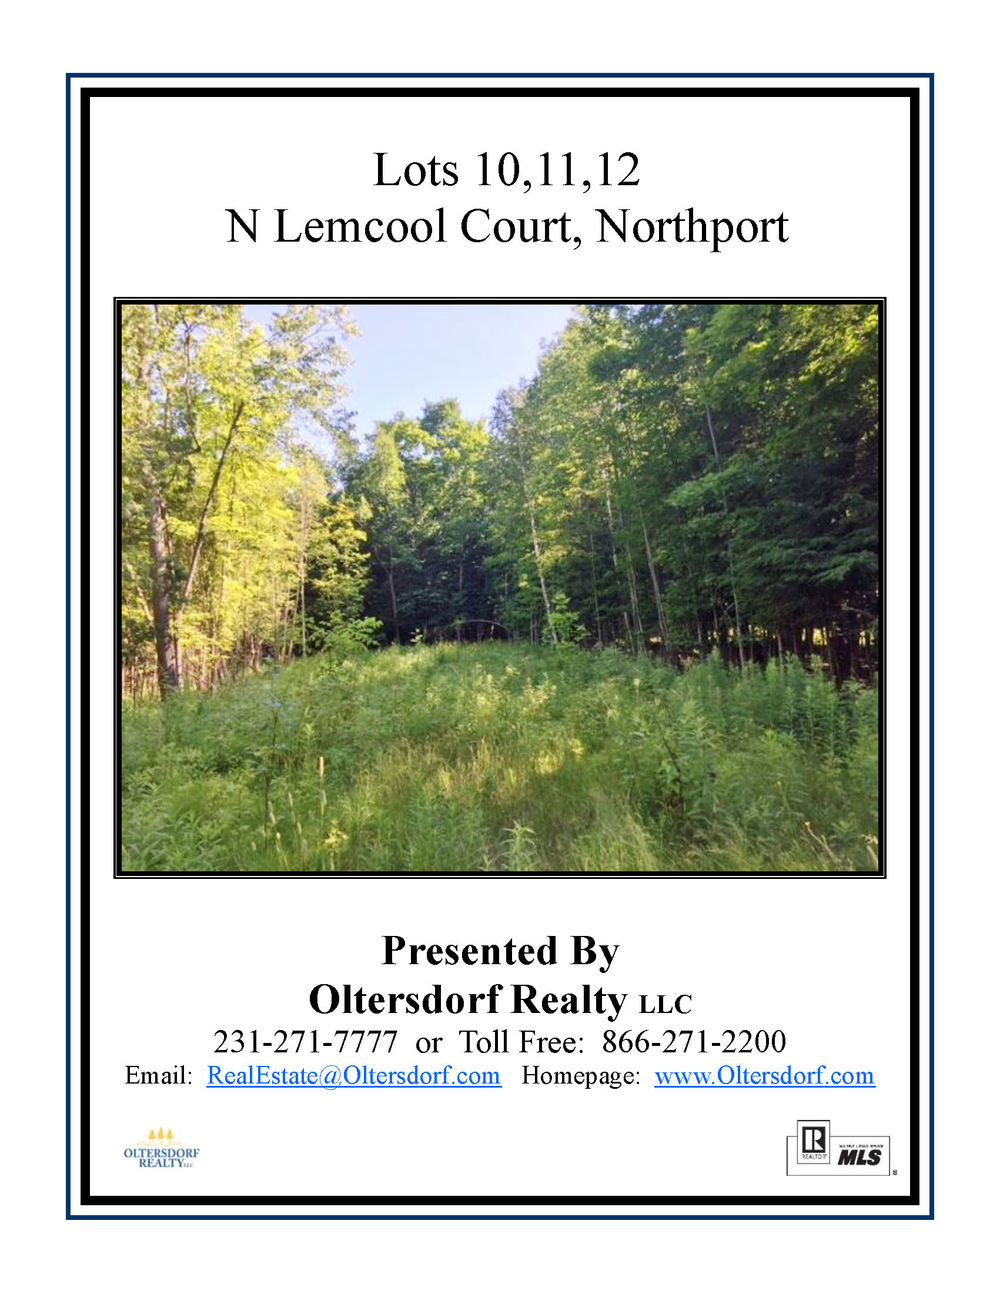 Lemcool Court, Village of Northport parcels for sale in Leelanau County by Oltersdorf Realty LLC (1).jpg